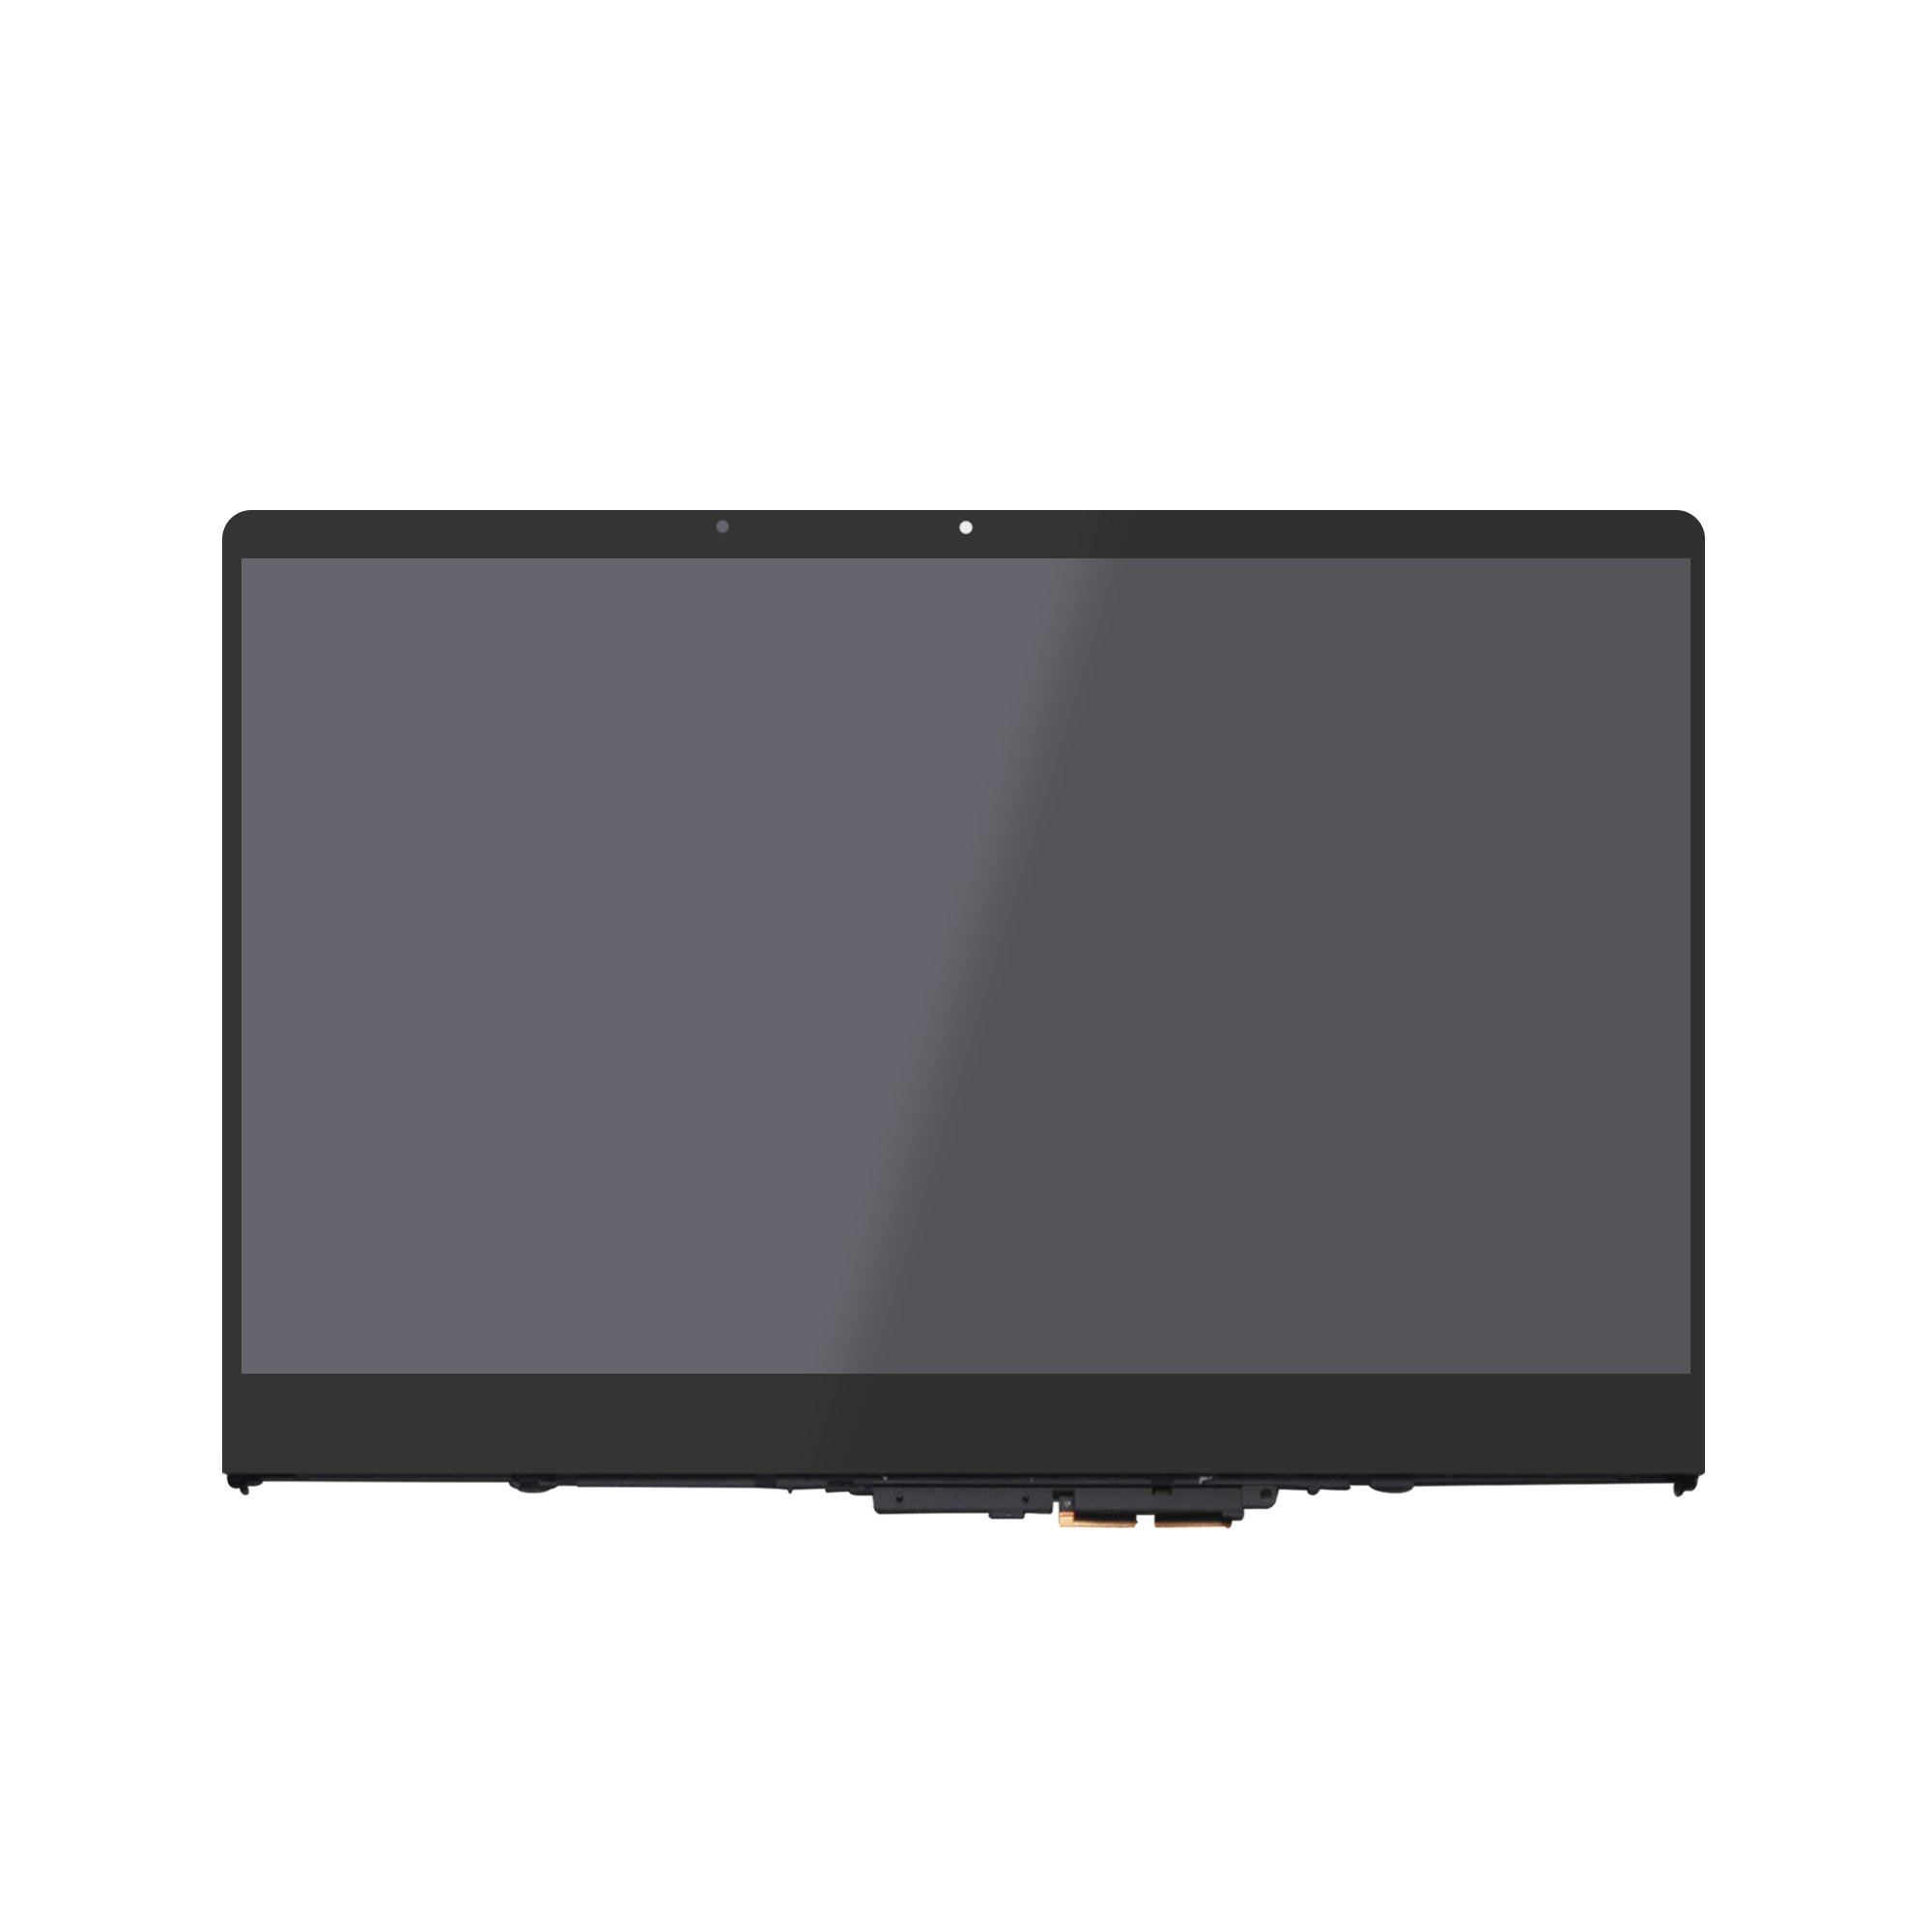 LCDOLED Compatible 15.6 inches FHD IPS LCD Display Touch Screen Digitizer Assembly with Bezel Replacement for Lenovo Yoga 710 710-15ISK 710-15IKB 80U0 80V5 5TD50K85364 5D10K81093 (1920x1080 N156HCA) by LCDOLED (Image #1)